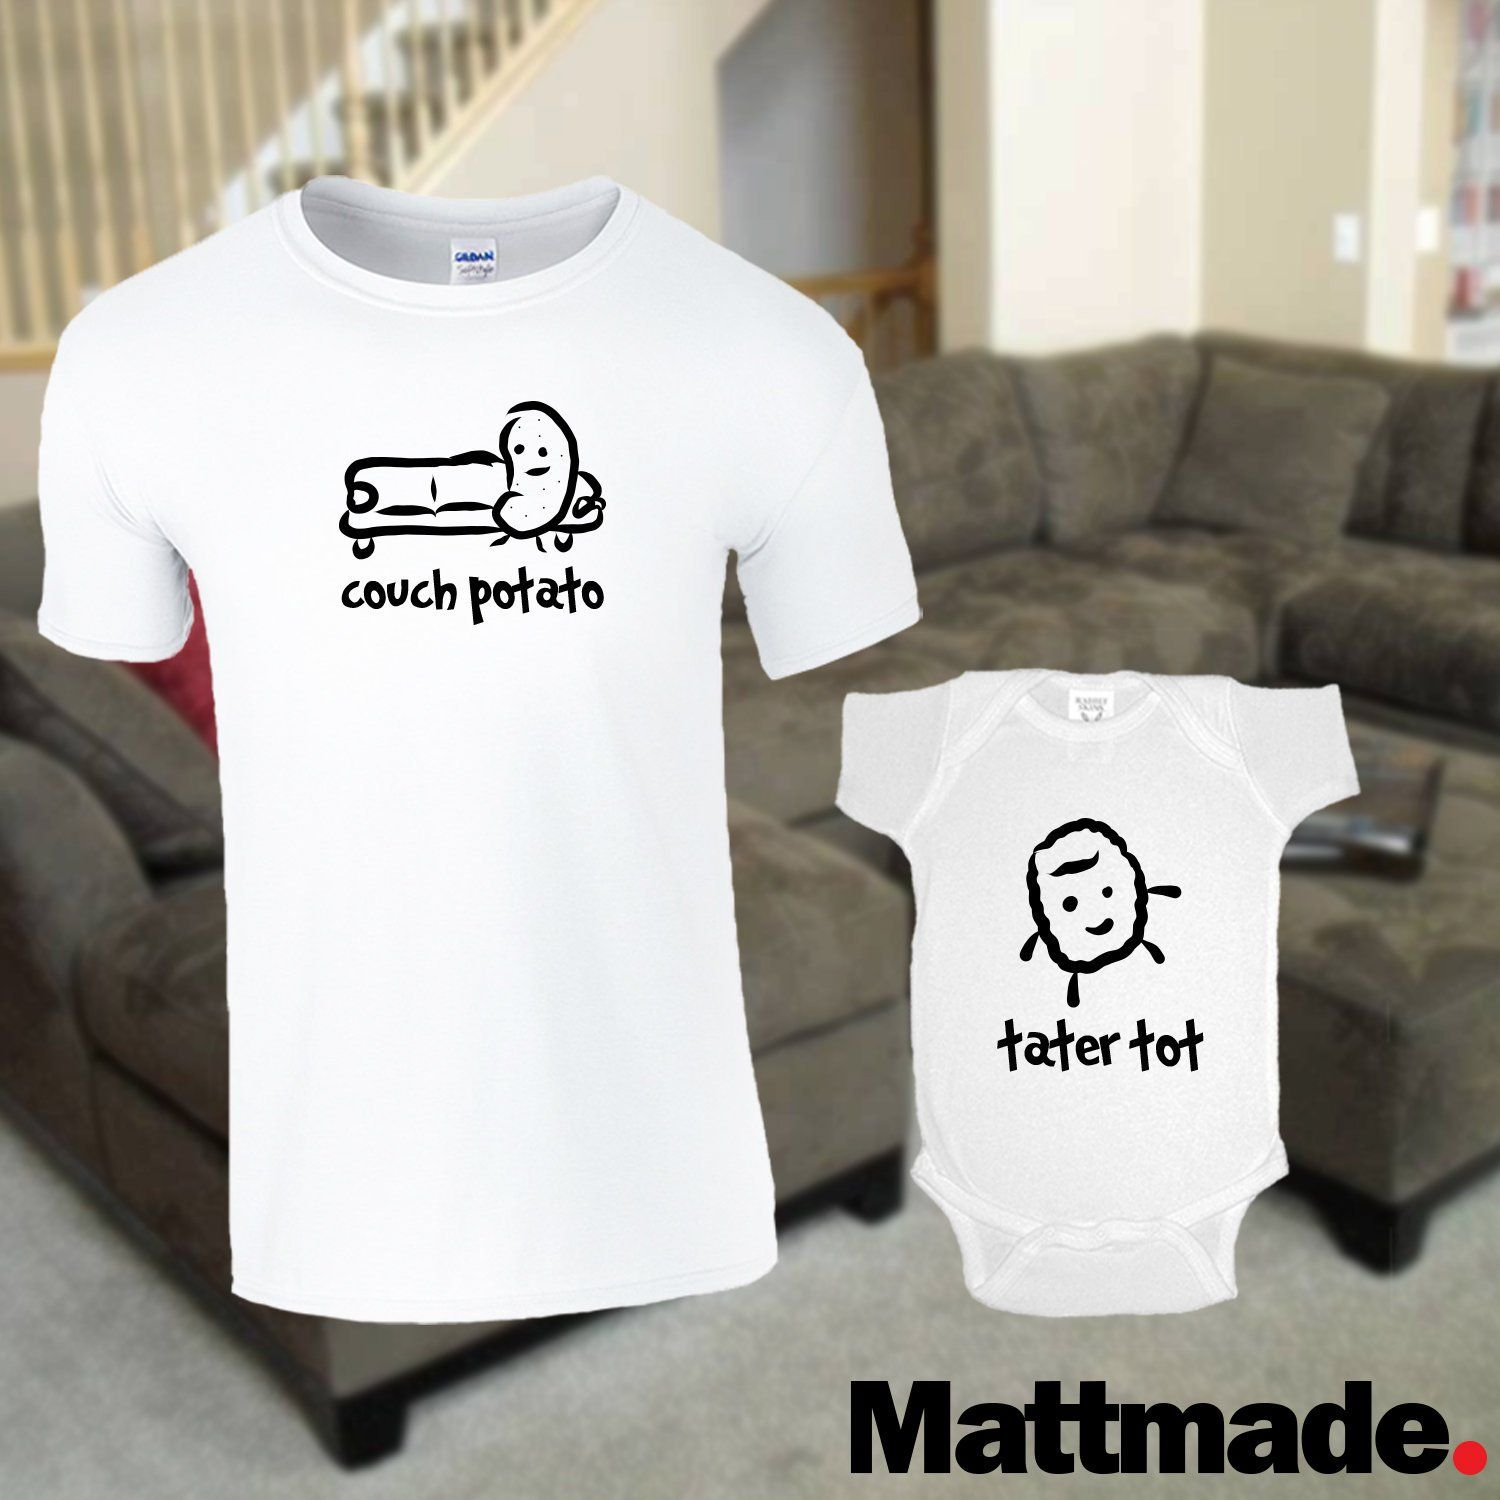 a4efb76d Couch Potato / Tater Tot / Dad & Baby Matching Shirts / White shirt and  jumper